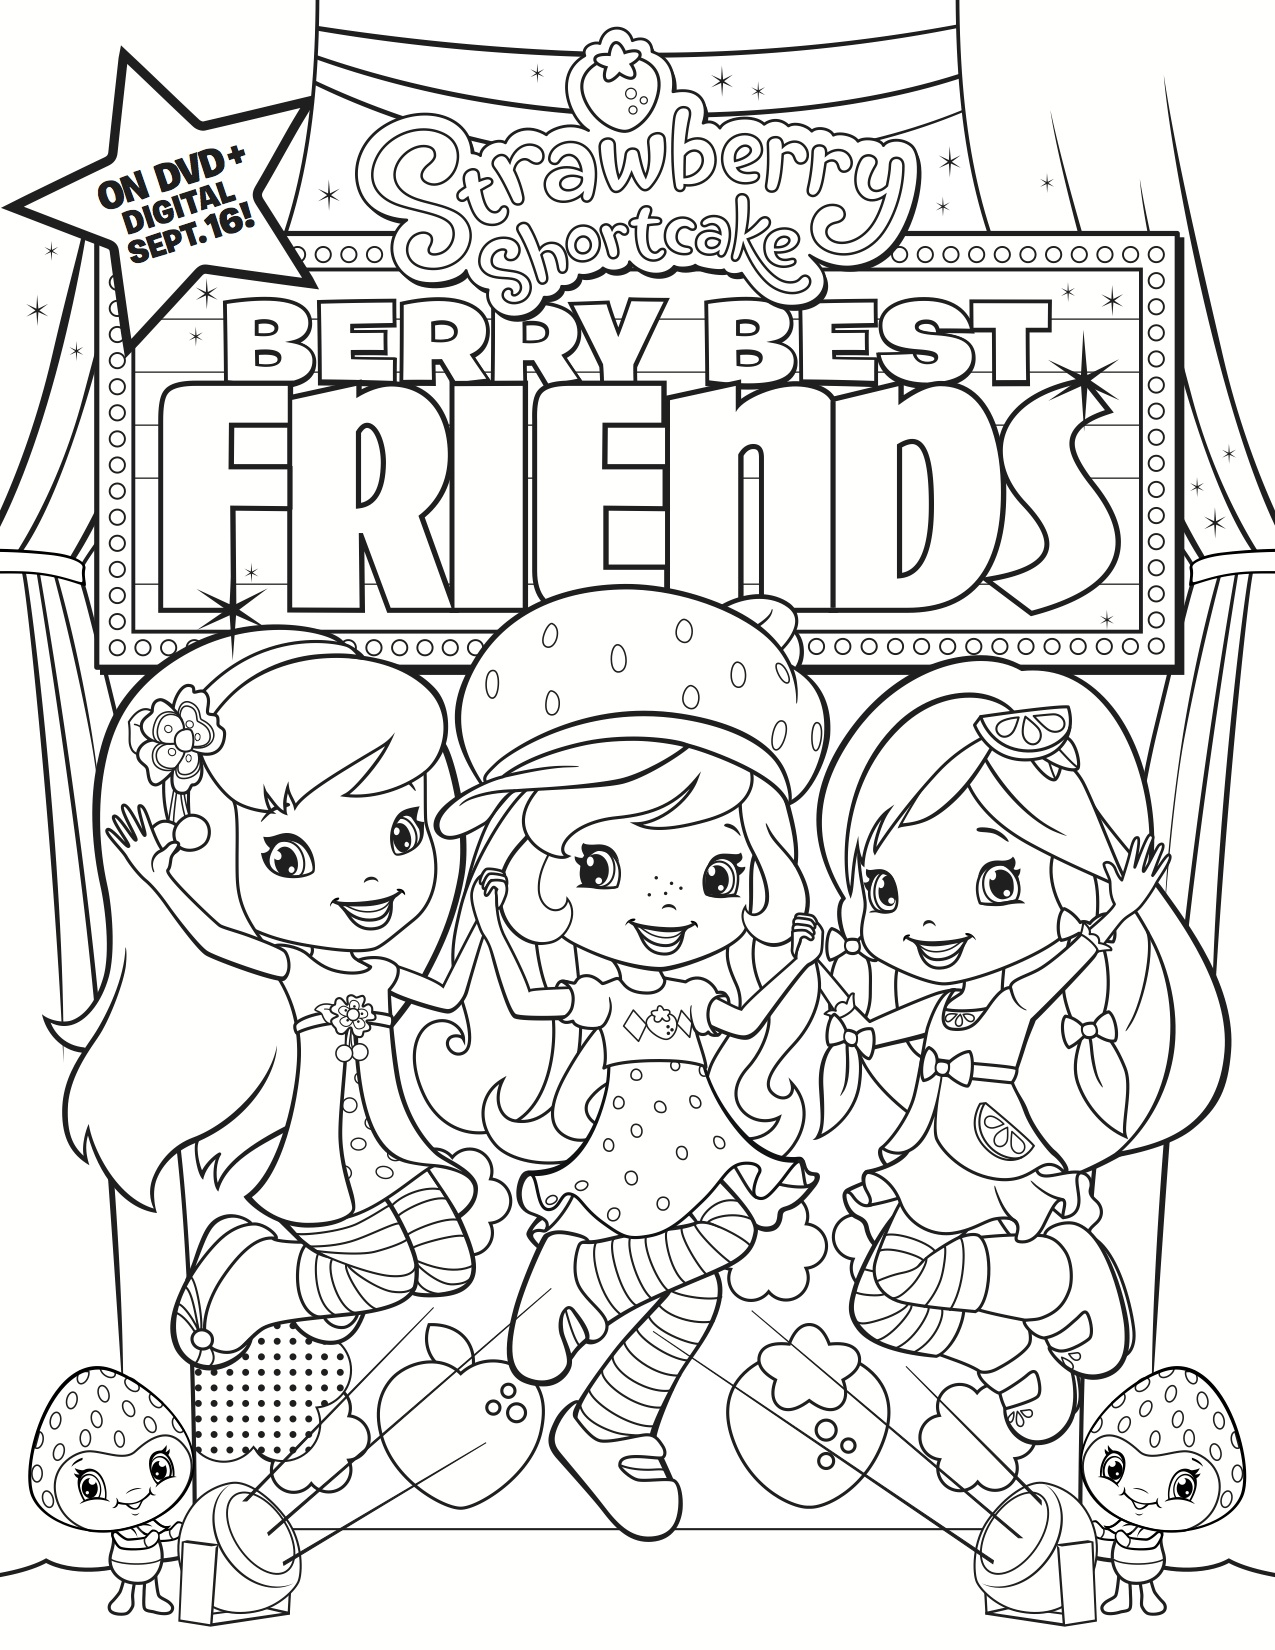 12 Strawberry Shortcake Birthday Party Printable Coloring Pages ... | 1650x1275